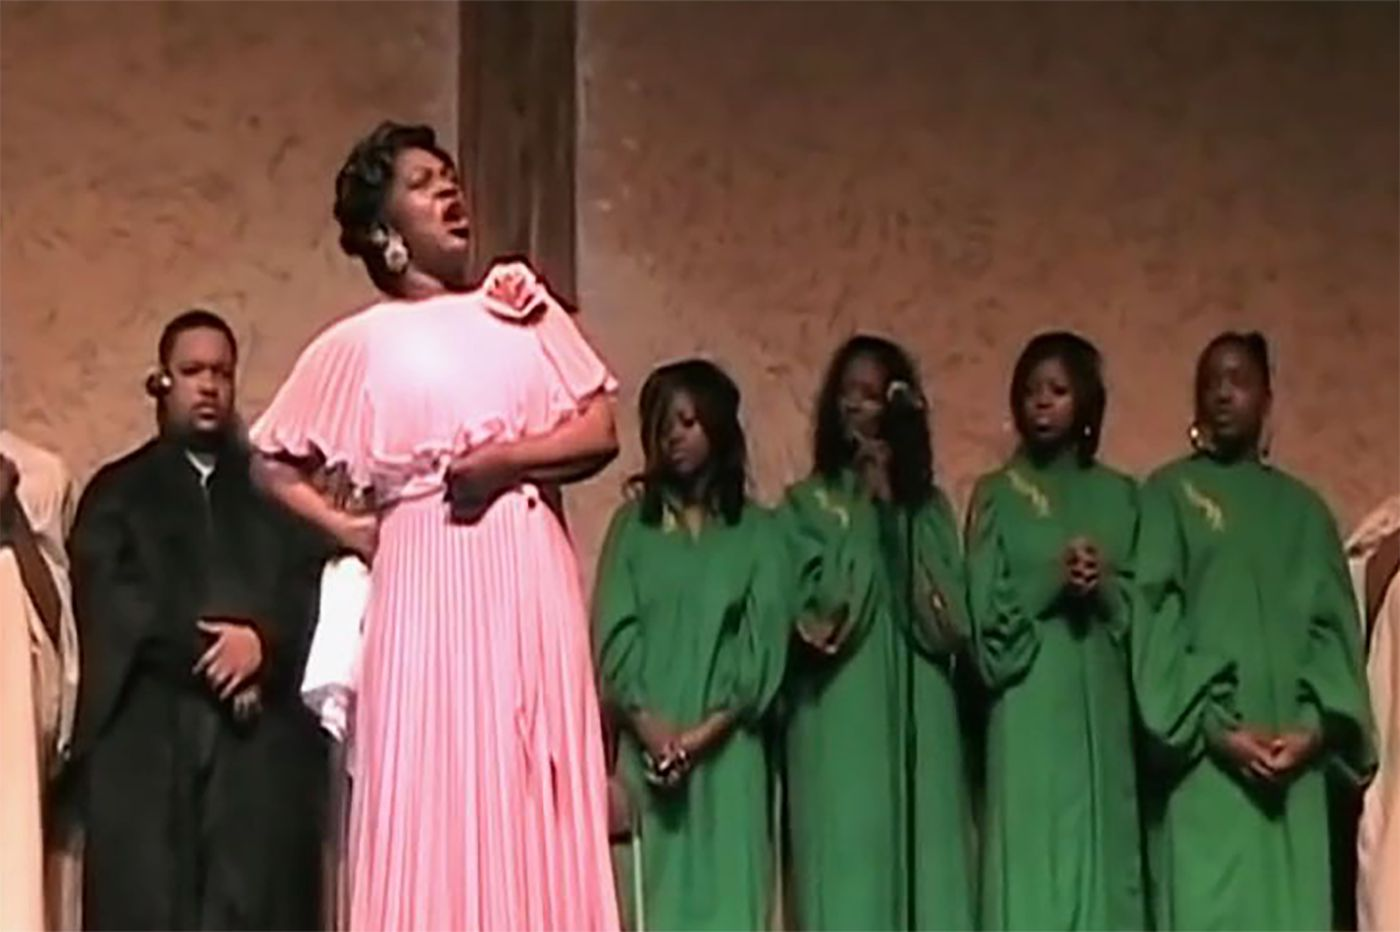 'The Life Story of Mahalia Jackson' kicks off national tour at the Met with two shows